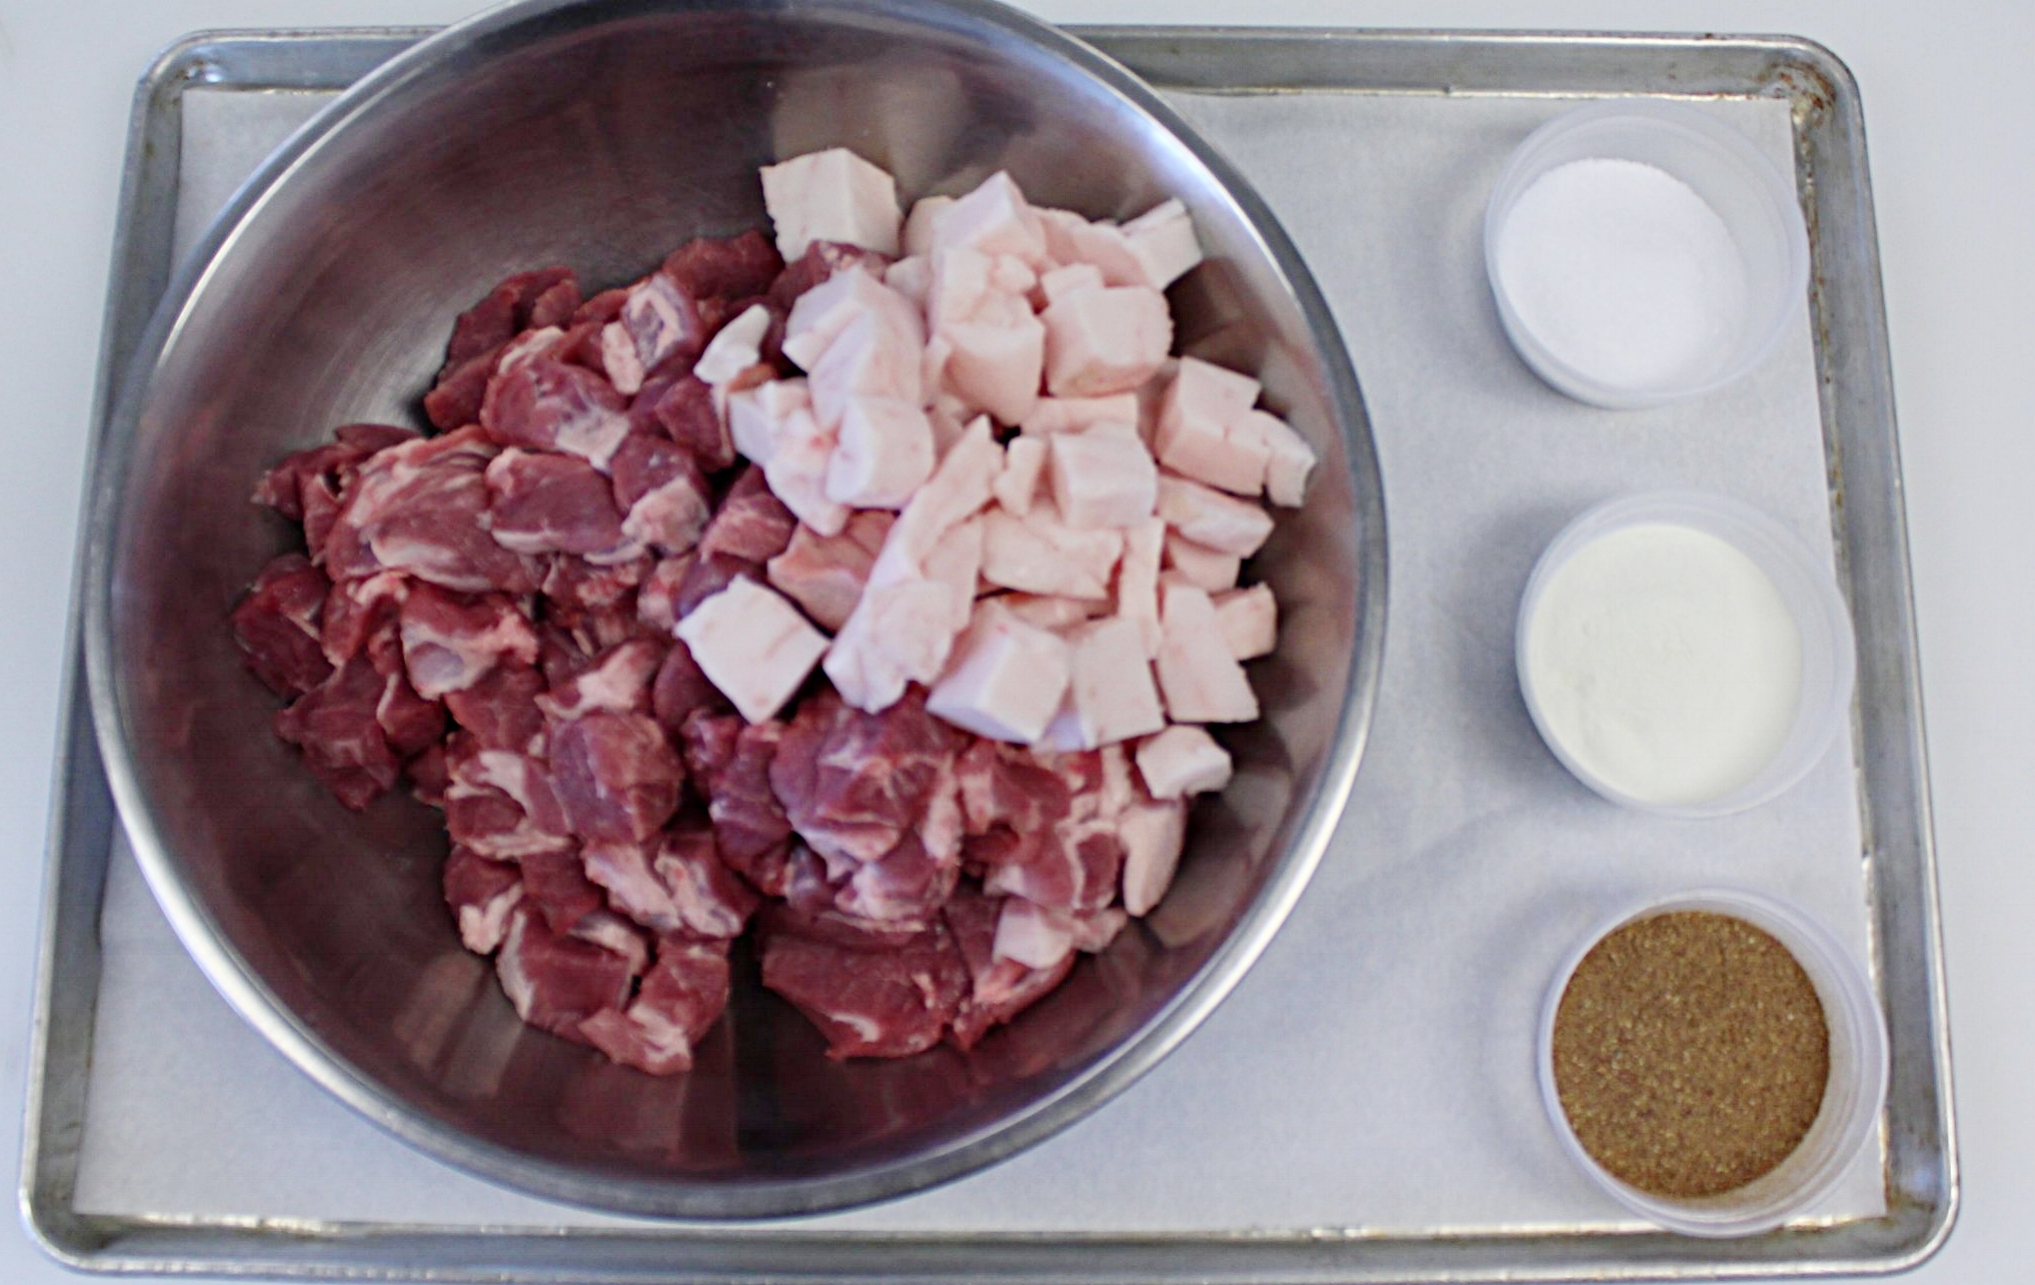 Seasoning:  We prefer to use kosher salt for it's purity and texture, as well as fresh herbs and whole spices in our sausage making.  We will freshly chop or grind the seasoning and add them to the cubed meat a few hours, or up to a day, before grinding.  This will ensure even distribution and enhance the overall flavor of the sausage.  When following the recipe below, feel free to omit of substitute different seasonings to your taste, just ensure the salt to meat ratio remains the same.